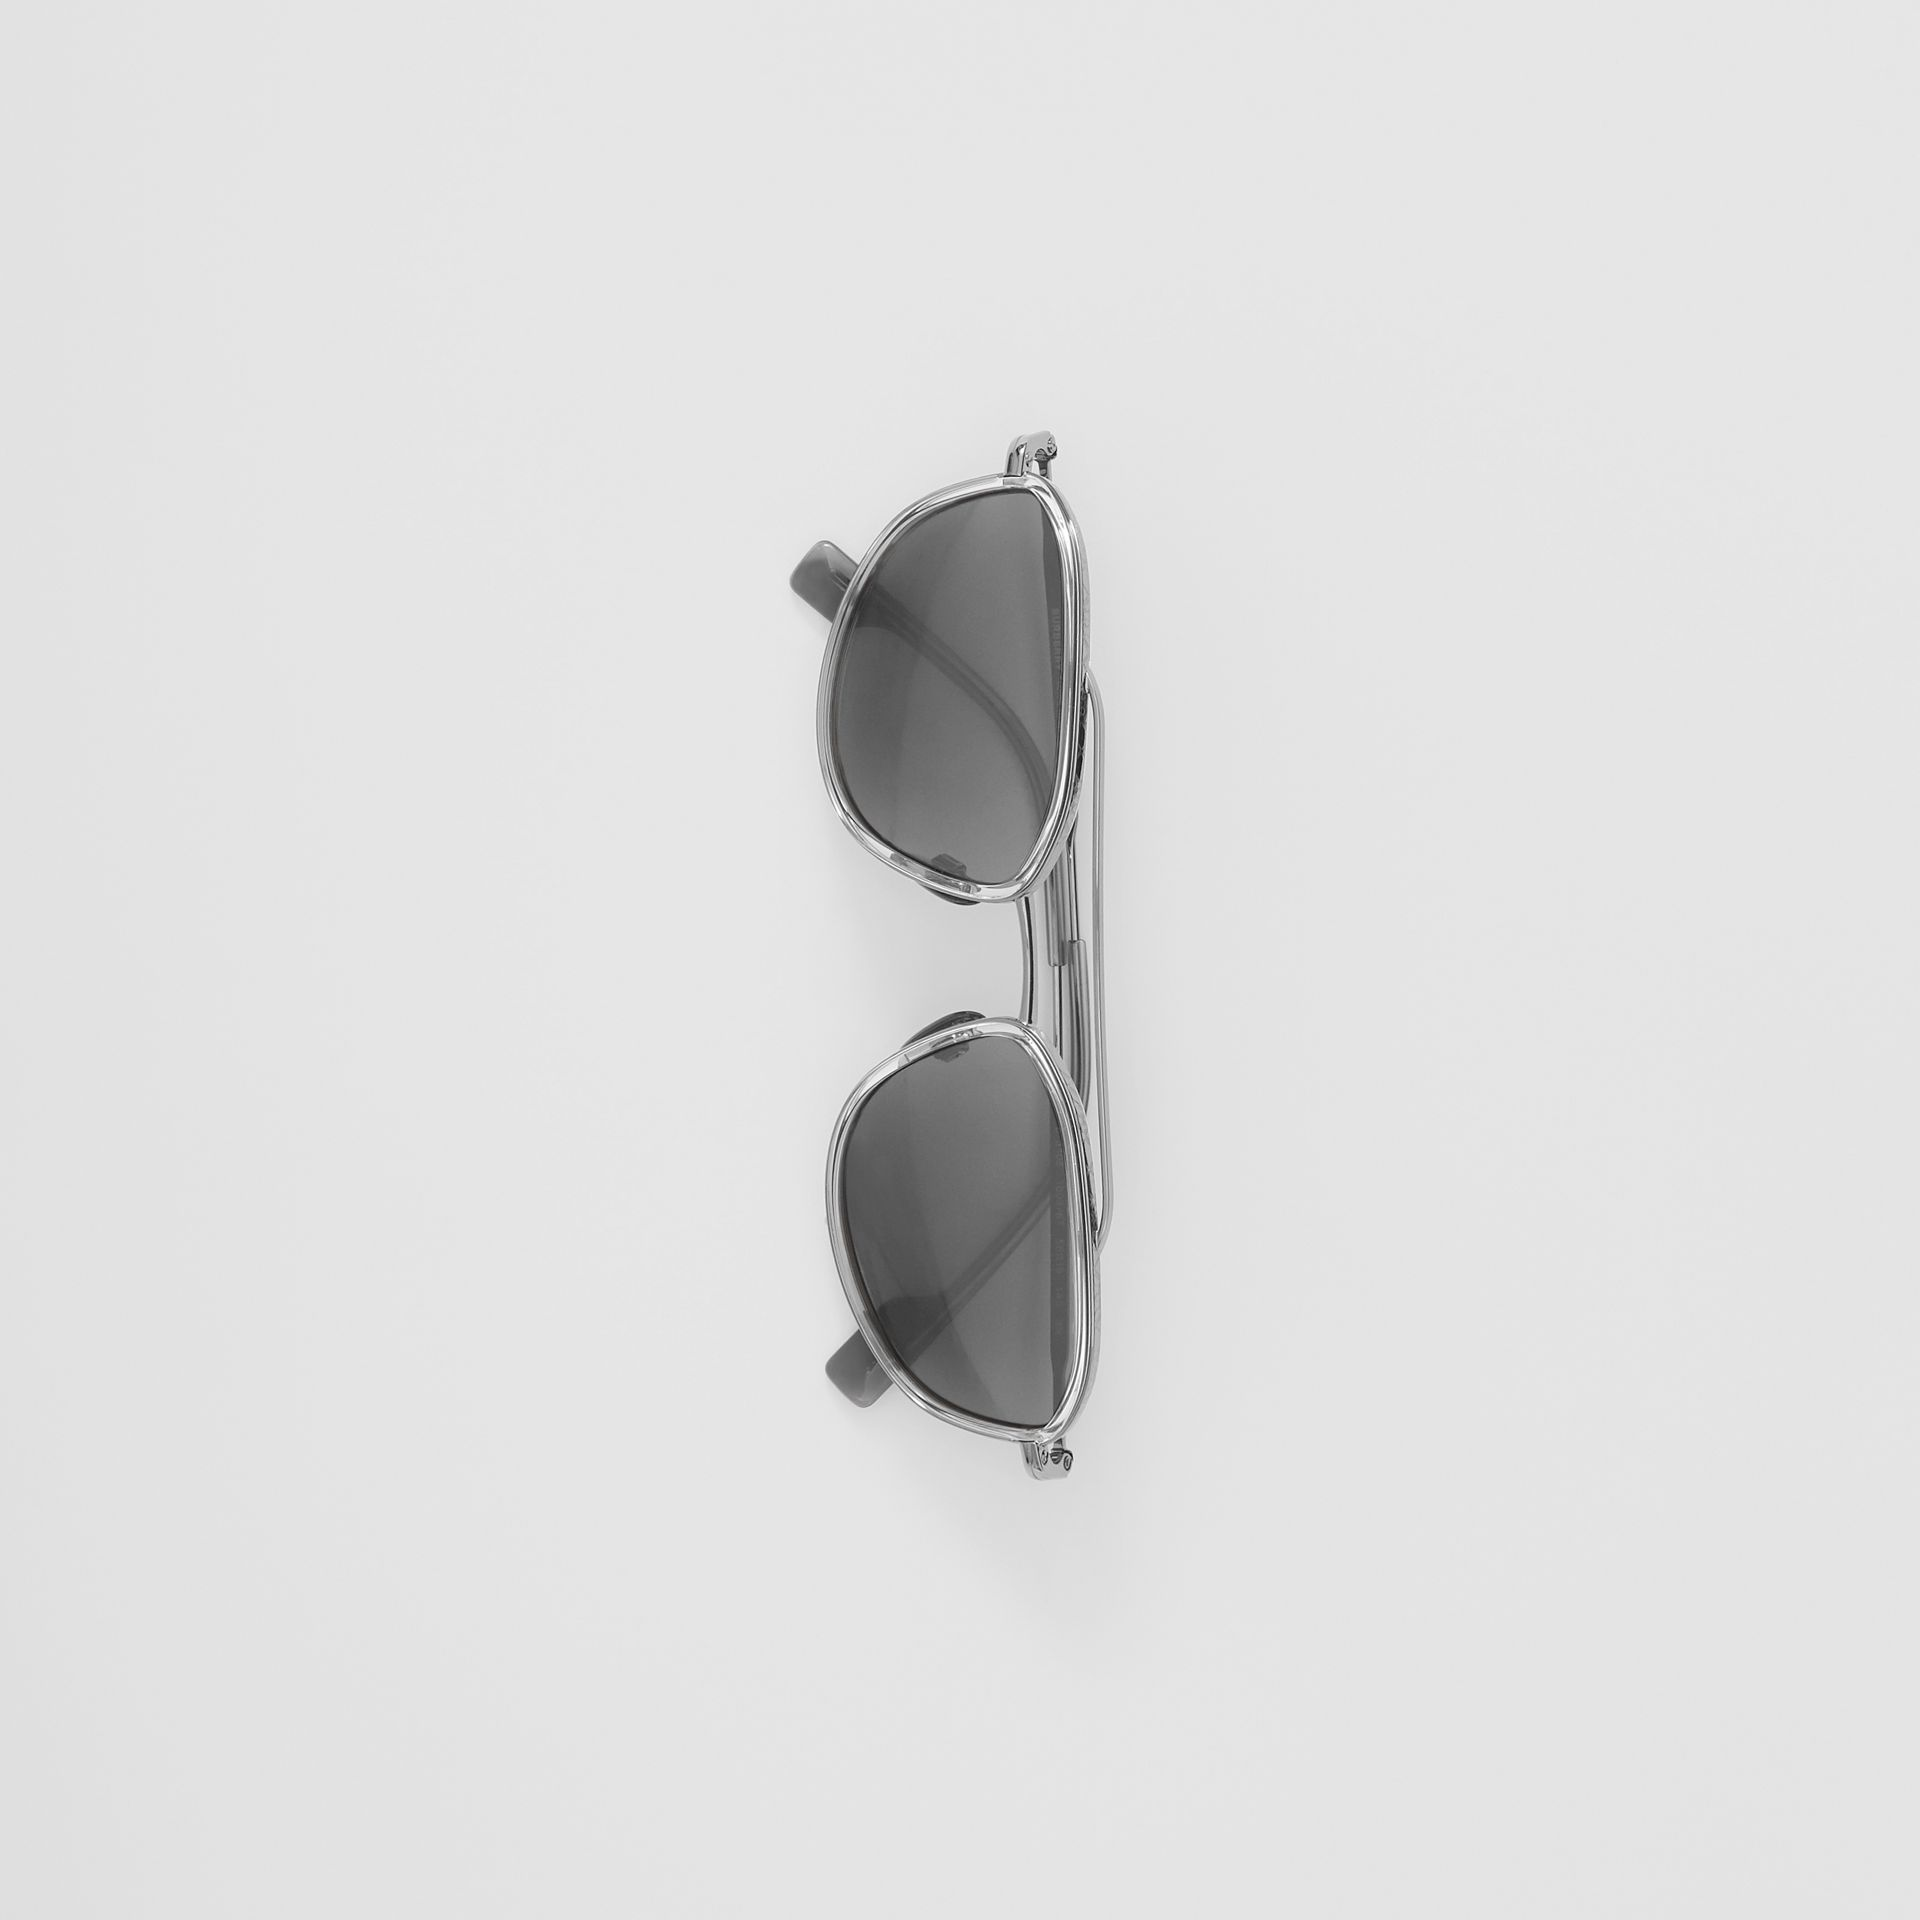 Geometric Navigator Sunglasses in Gunmetal Grey - Men | Burberry United States - gallery image 2